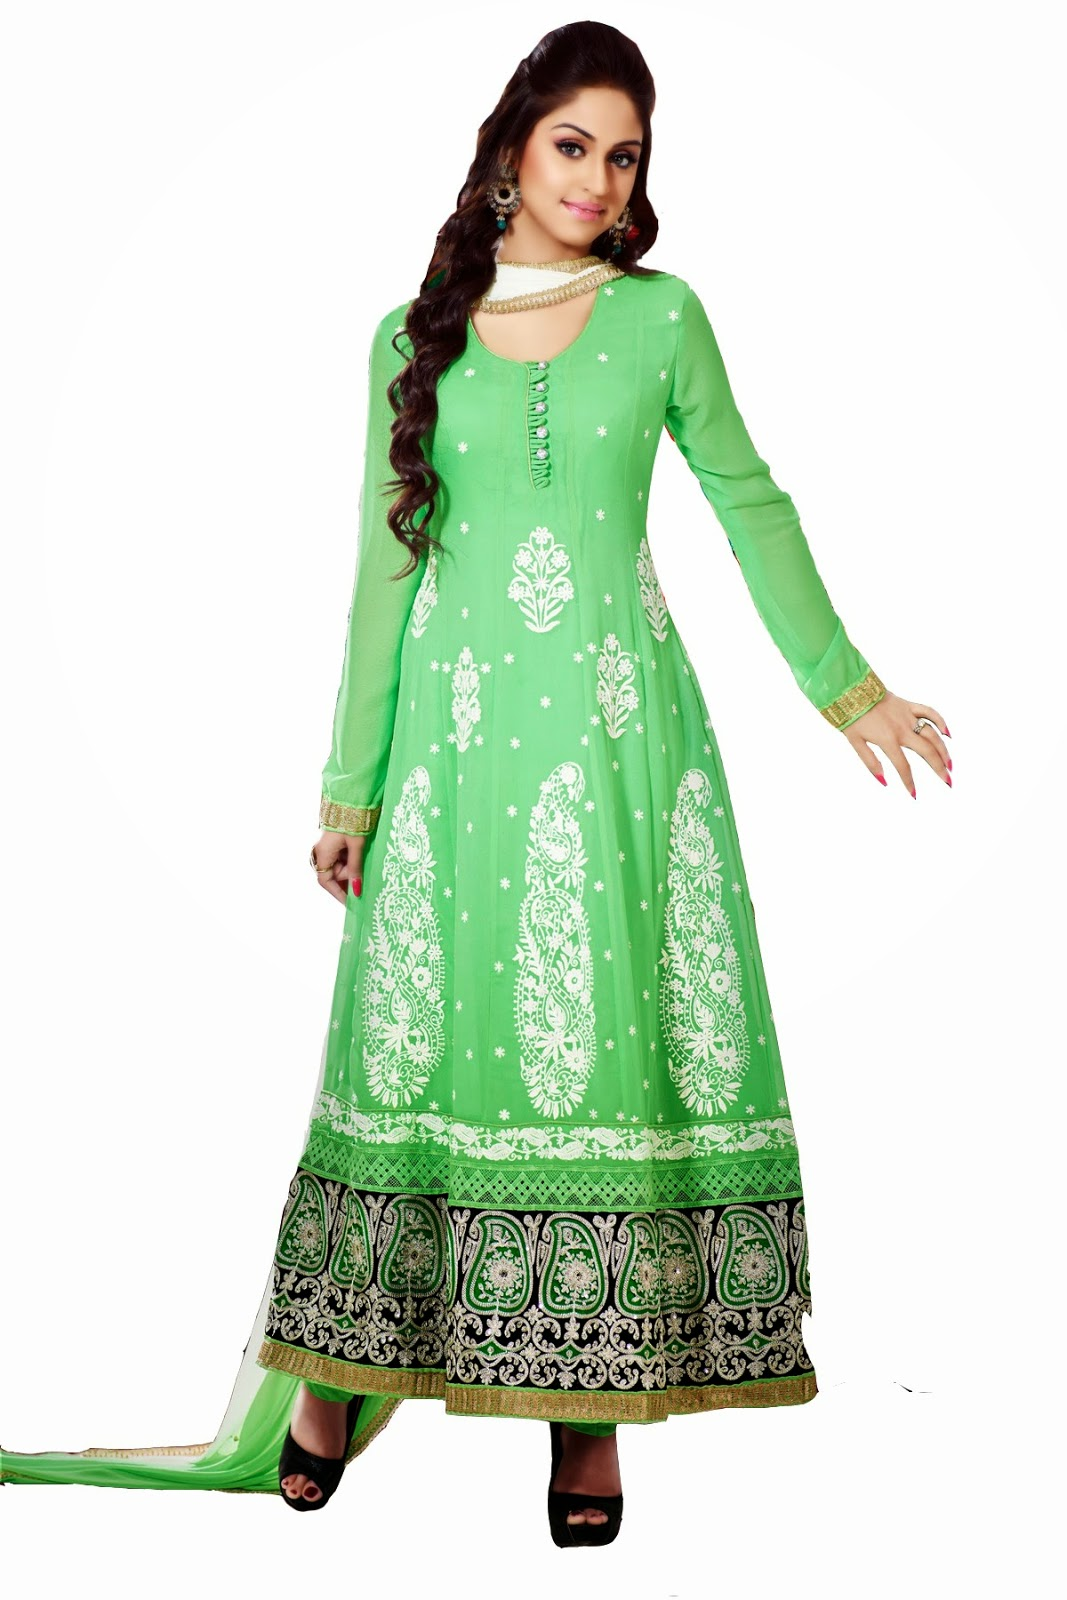 Madhubala Ankle Length Latest Anarkali Readymade Frocks 2014